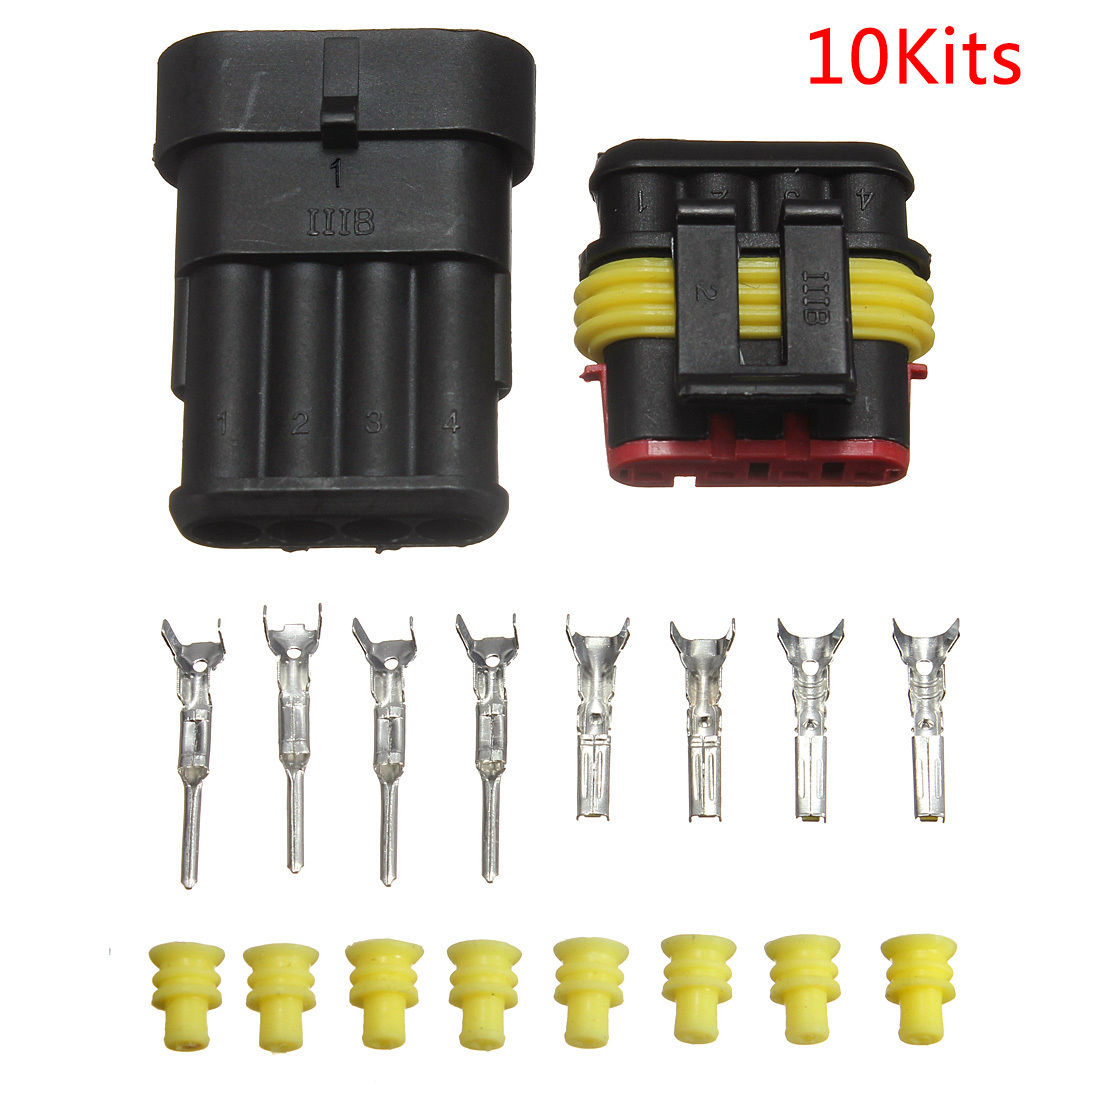 10 Kits Car Auto 4 Pin Way Sealed Waterproof Electrical Wire Connector Plug Sets heat resistant kanekalon party hair high quality beautiful fashion style pigtails multi color japanese anime wig